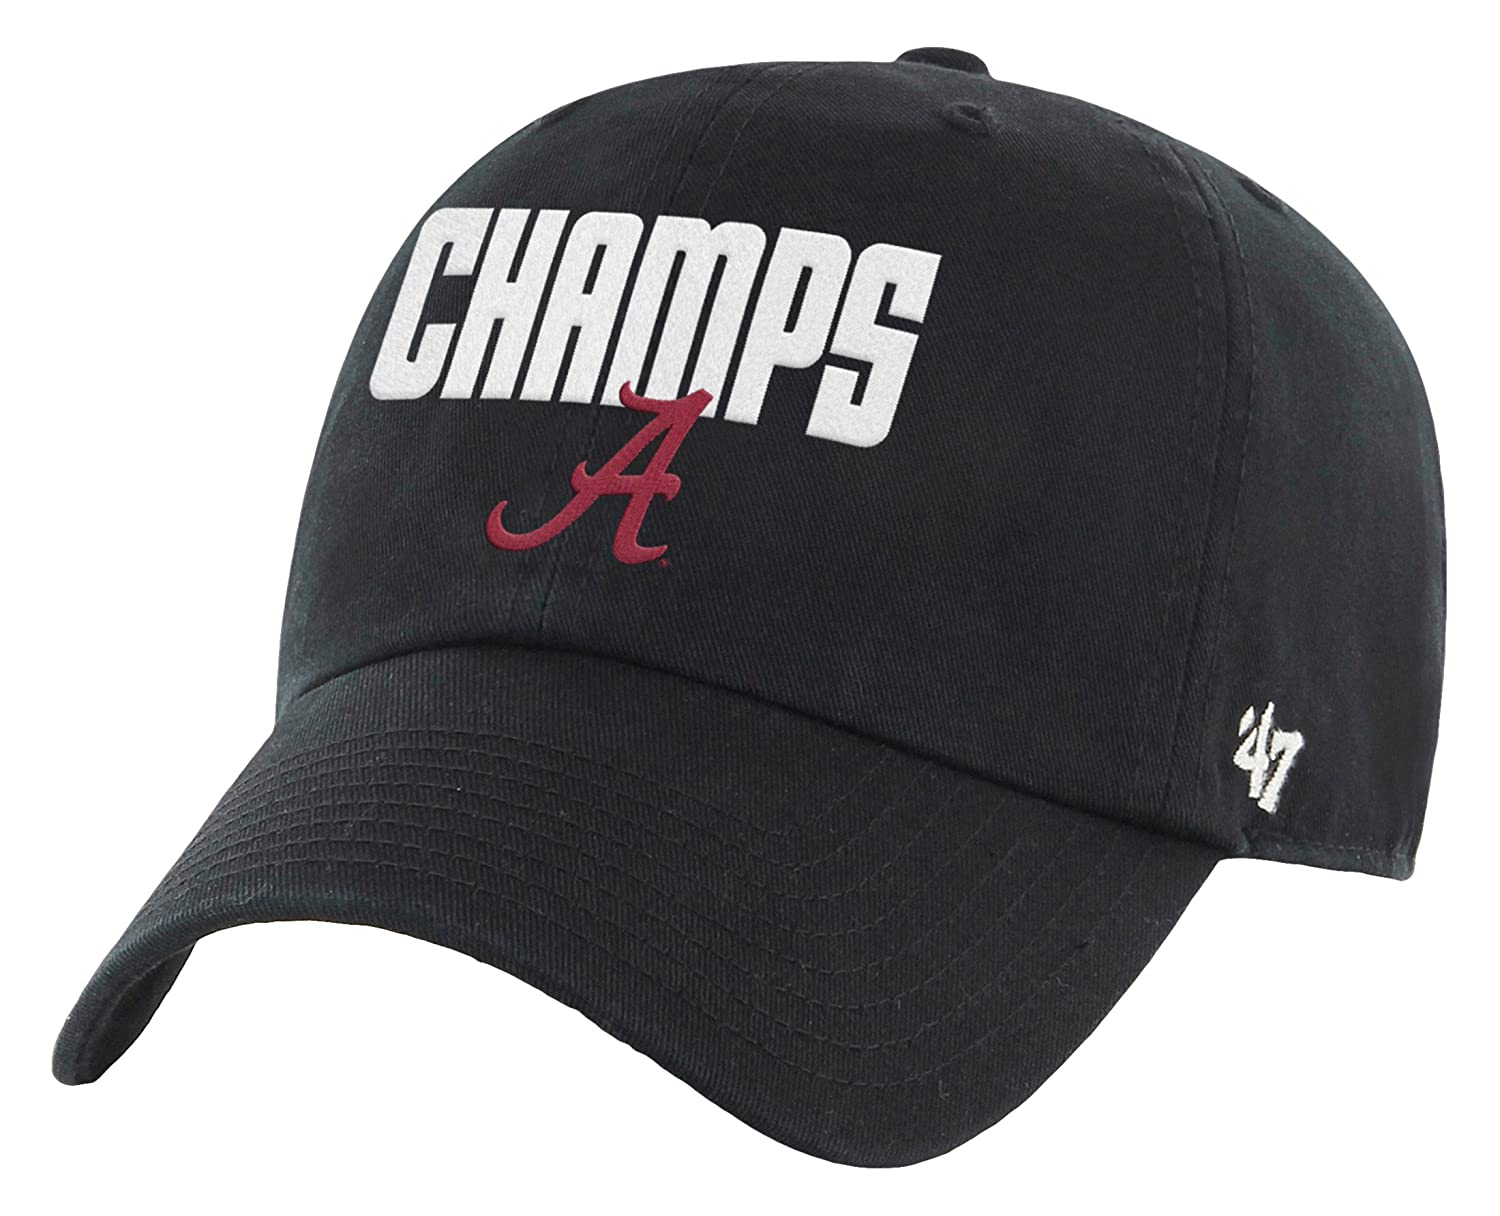 low priced 70448 0f4cc Amazon.com   NCAA Alabama Crimson Tide 2015 National Champions Clean Up  Adjustable Hat, One Size, Black   Sports   Outdoors